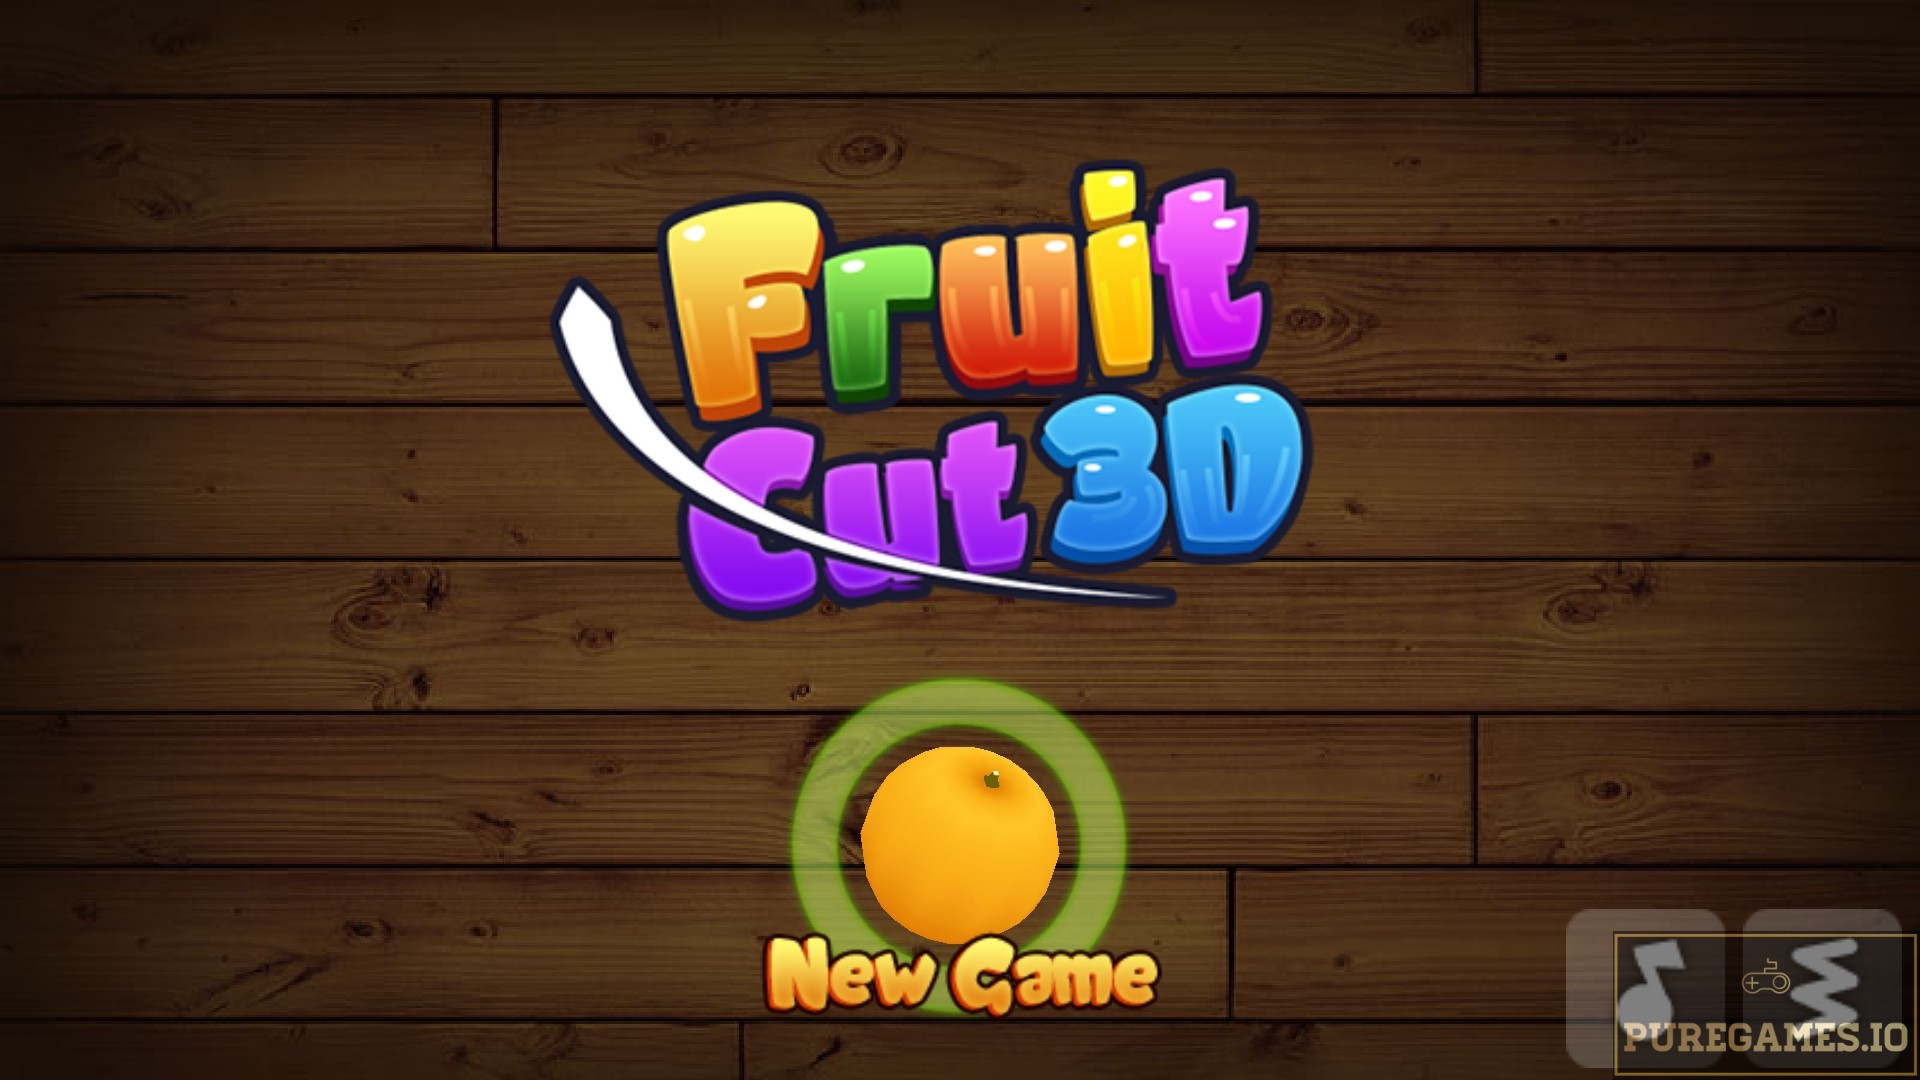 Download Fruit Cut 3D MOD APK - For Android/iOS 11